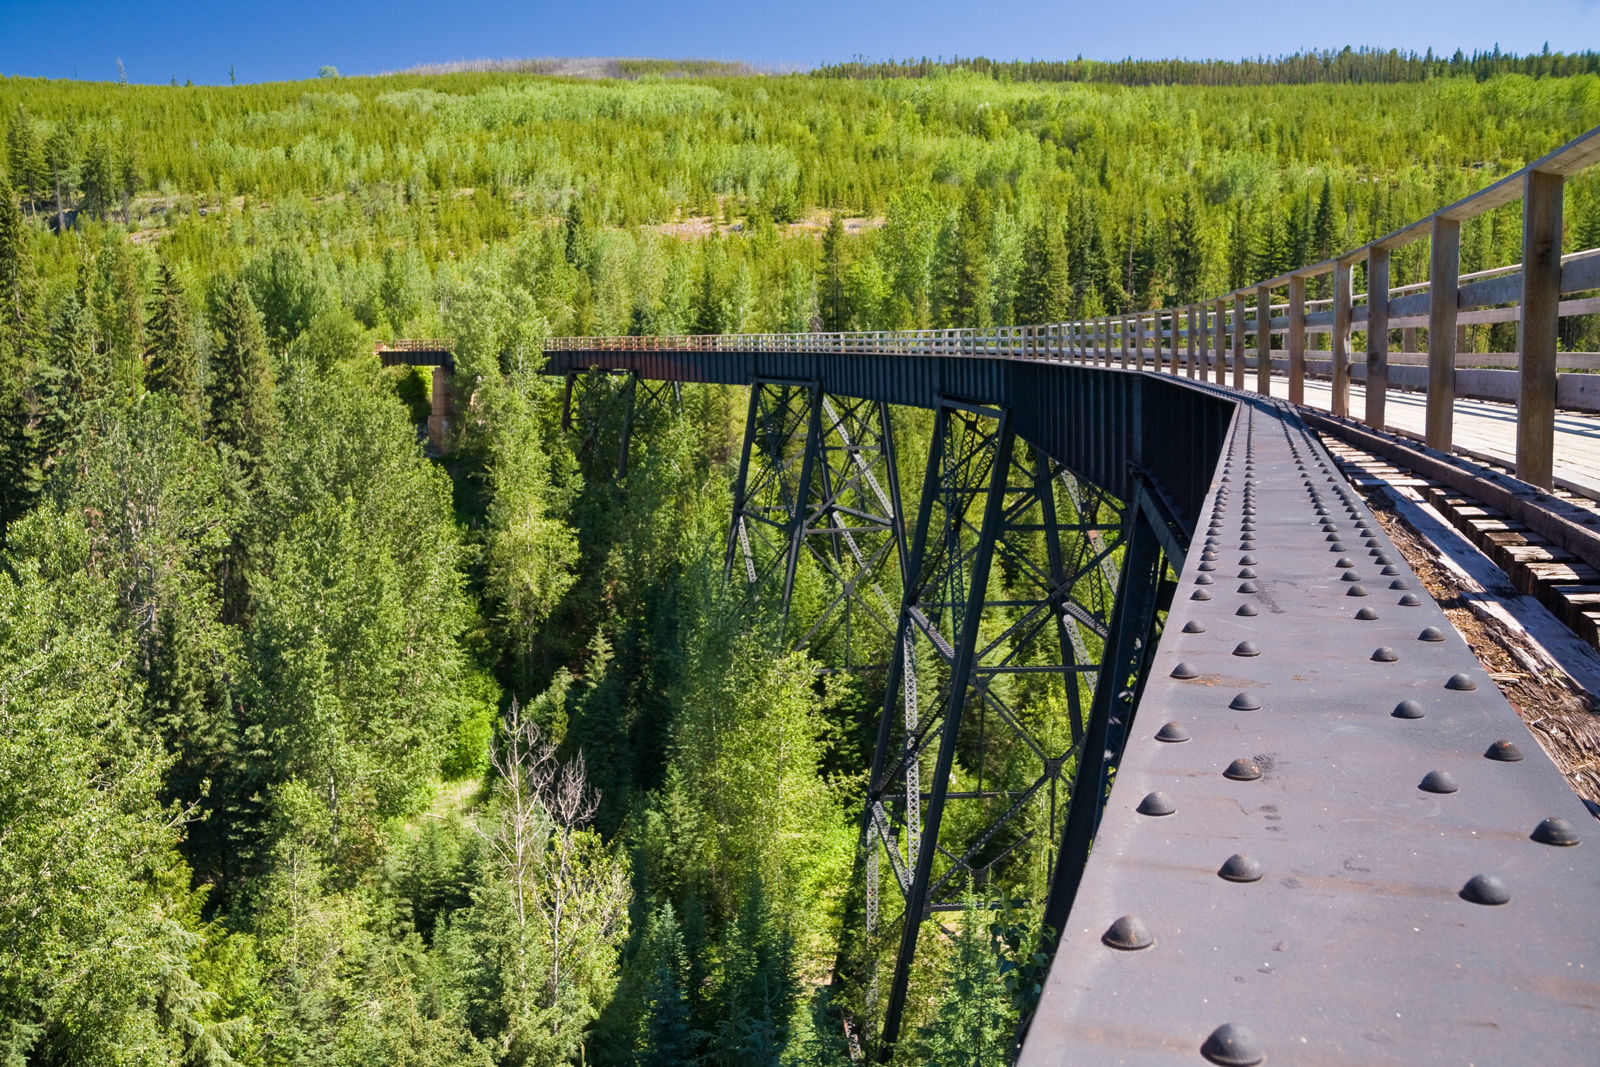 Visit local attractions such as the Kettle Valley Railway (KVR) when you stay at one of the best hotels in Kelowna on Highway 97.